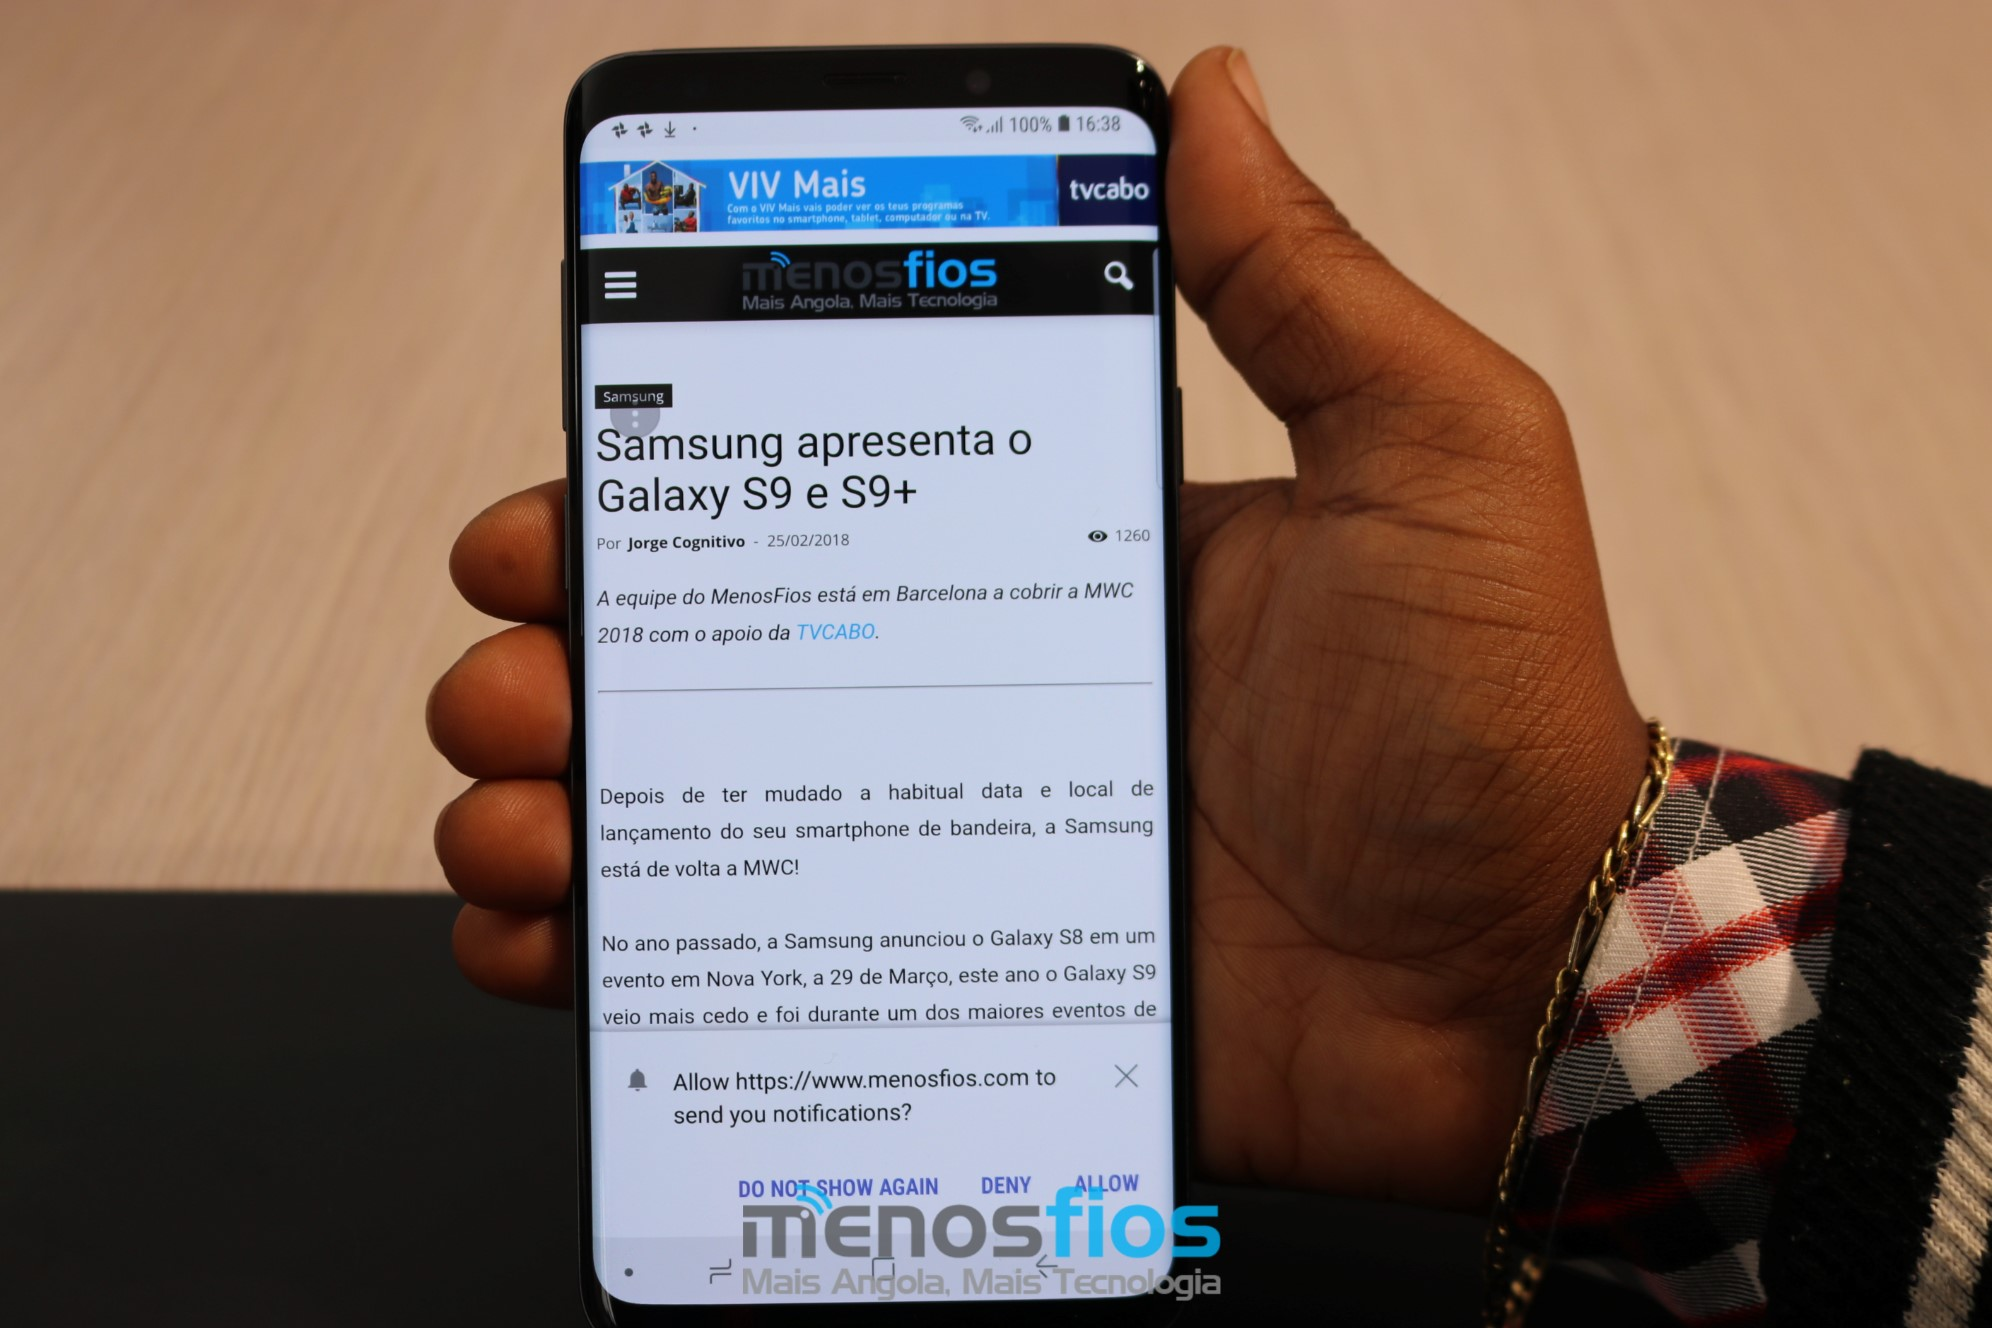 Samsung Galaxy S9 (5) | Less wires